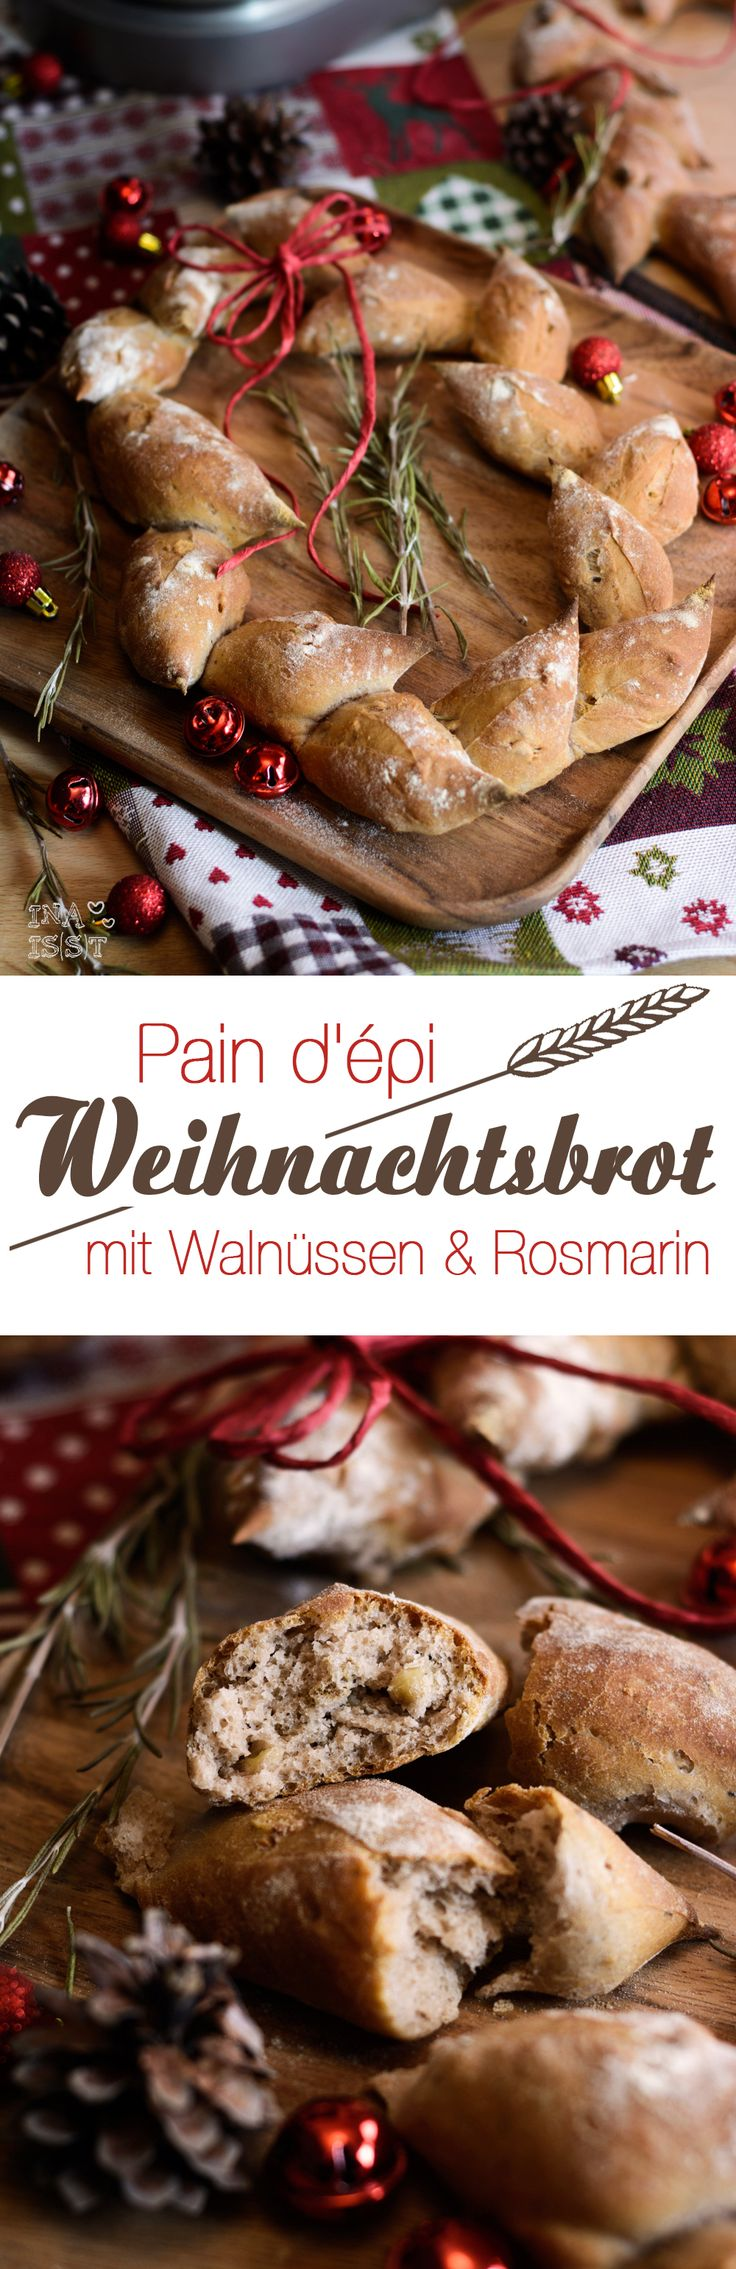 Pain d'épi - Weihnachtsbrot mit Walnüssen&Rosmarin /// Christmas bread with walnuts and rosemary